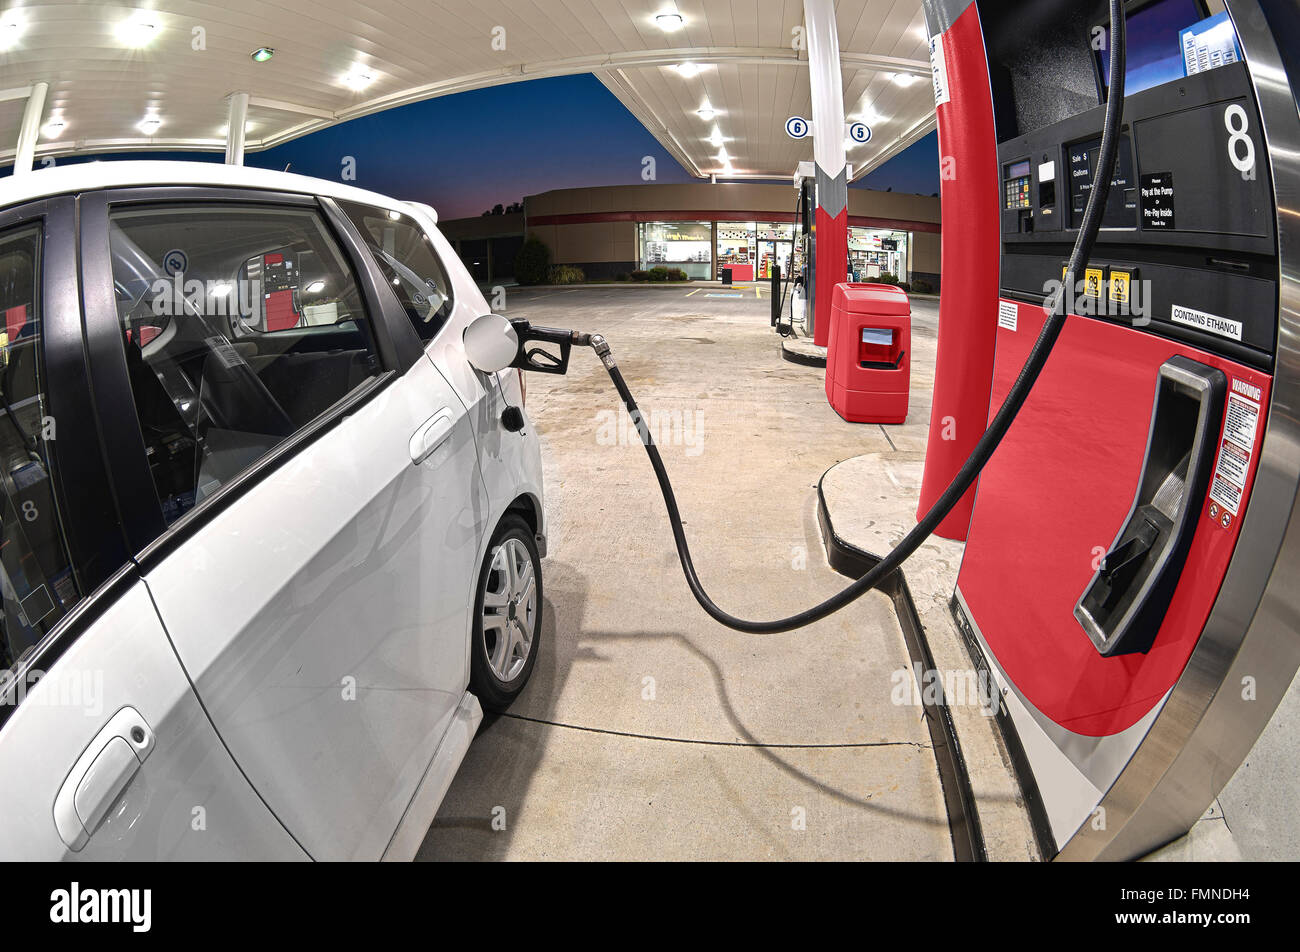 Refueling Small Economy Car At Gasoline Station - Stock Image